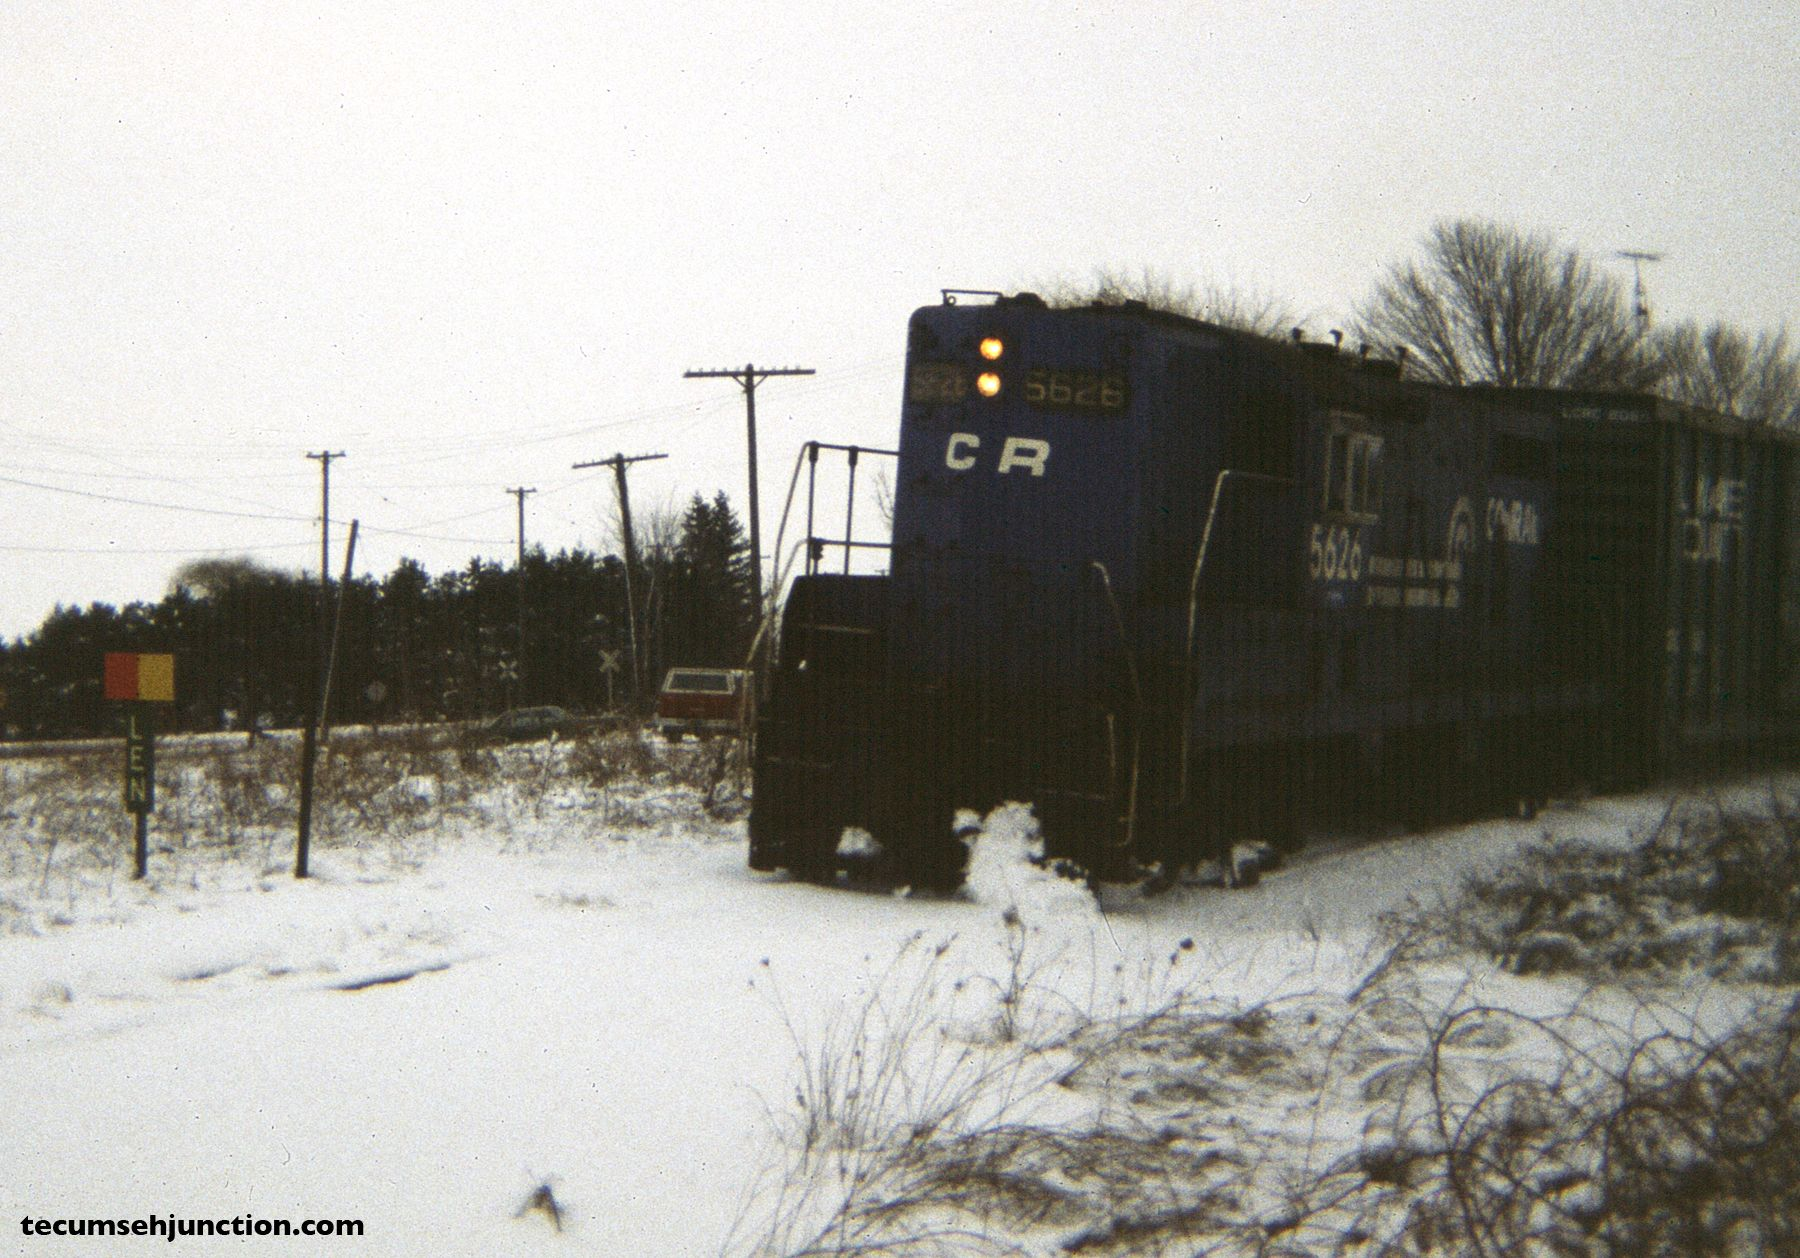 """Conrail 5626 rides the curve on the """"Old Road"""" side of the wye at Lenawee Junction, MI, to reach the Lenawee County Railroad interchange. (12 December 1981)"""